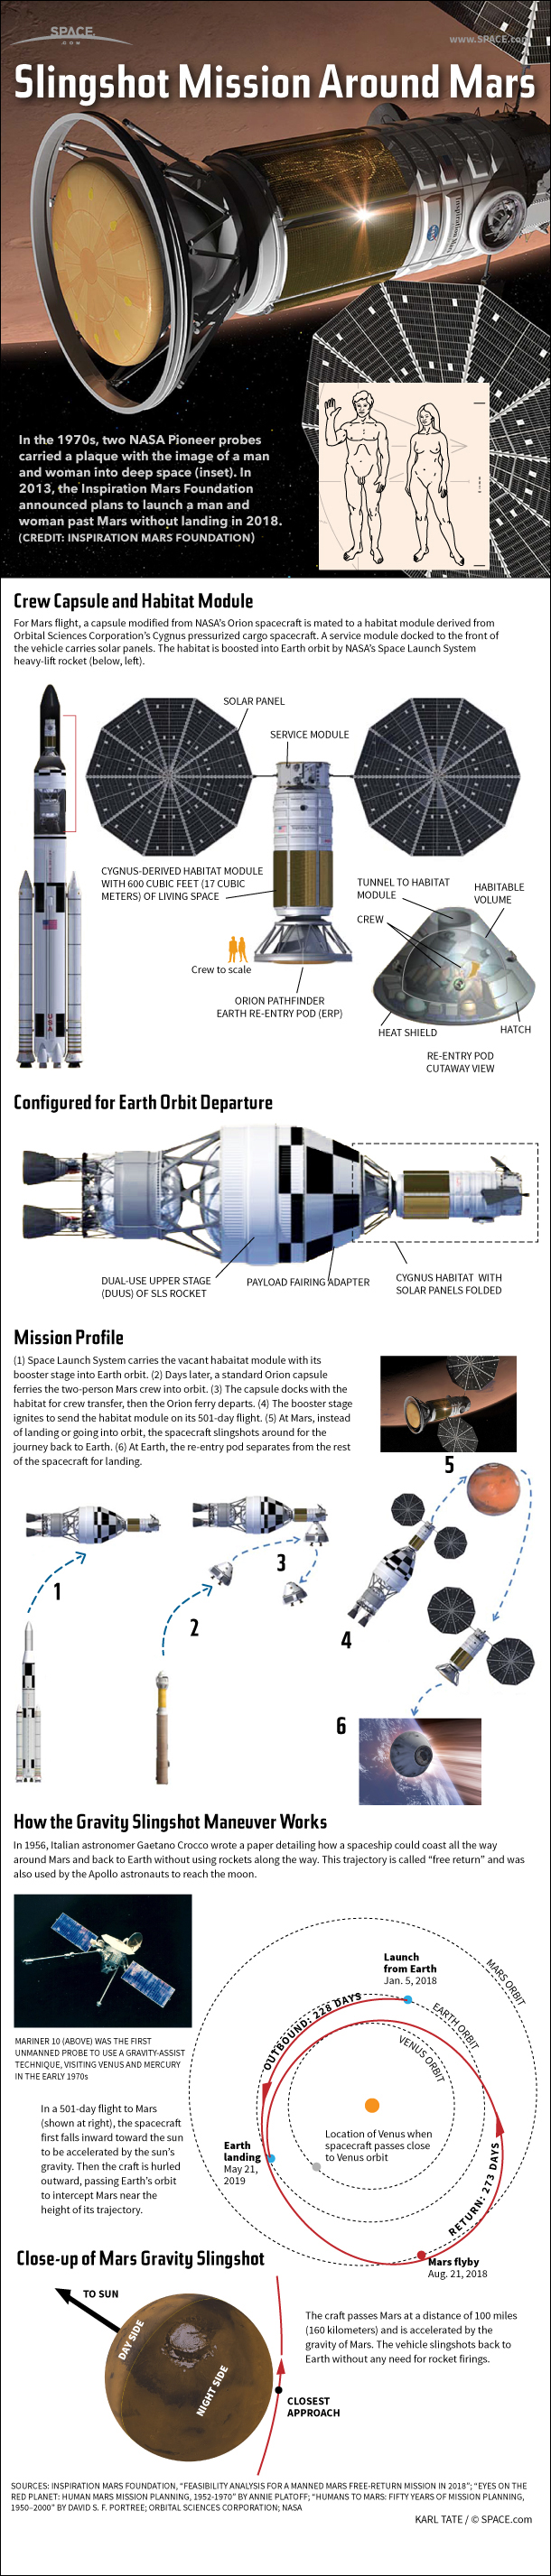 Dennis Tito's 2018 Human Mars Flyby Mission Explained (Infographic)